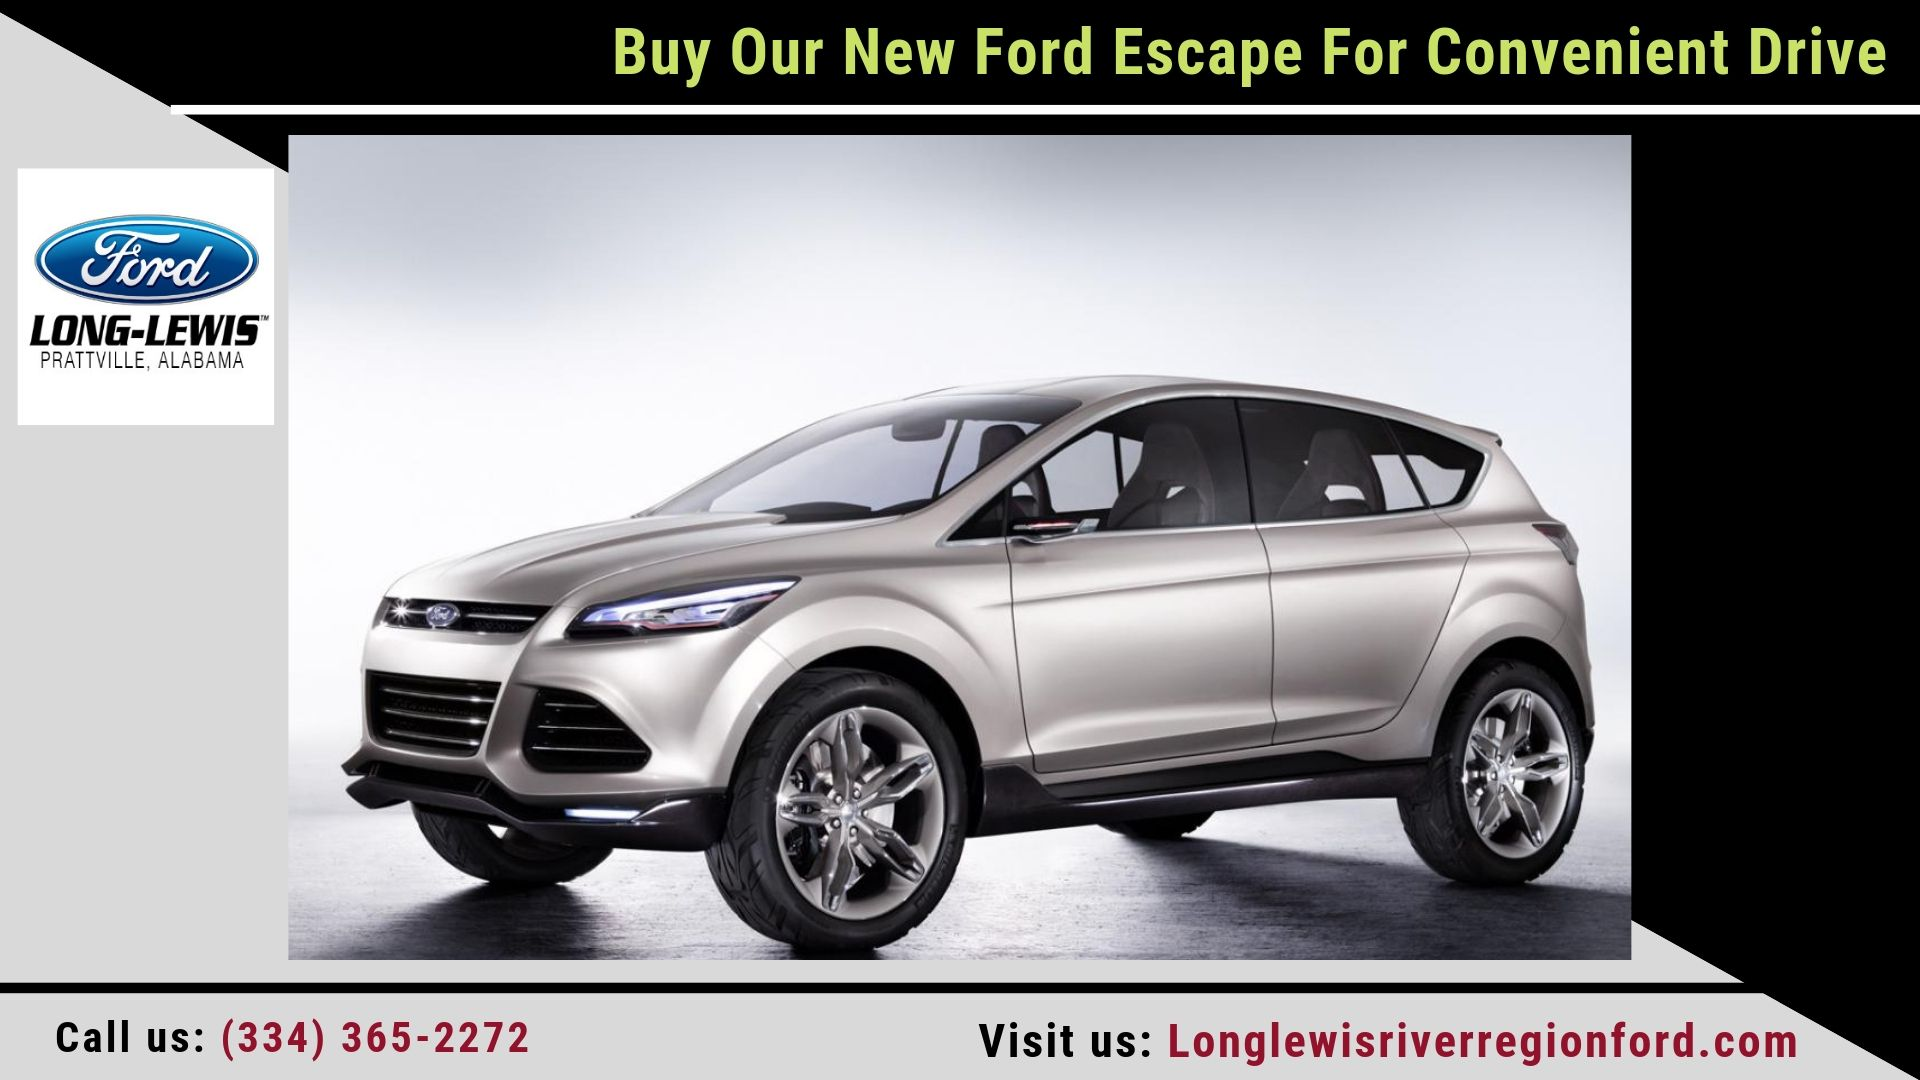 Buy Our New Ford Escape For Convenient Drive Ford Expedition Escape Car Ford Escape